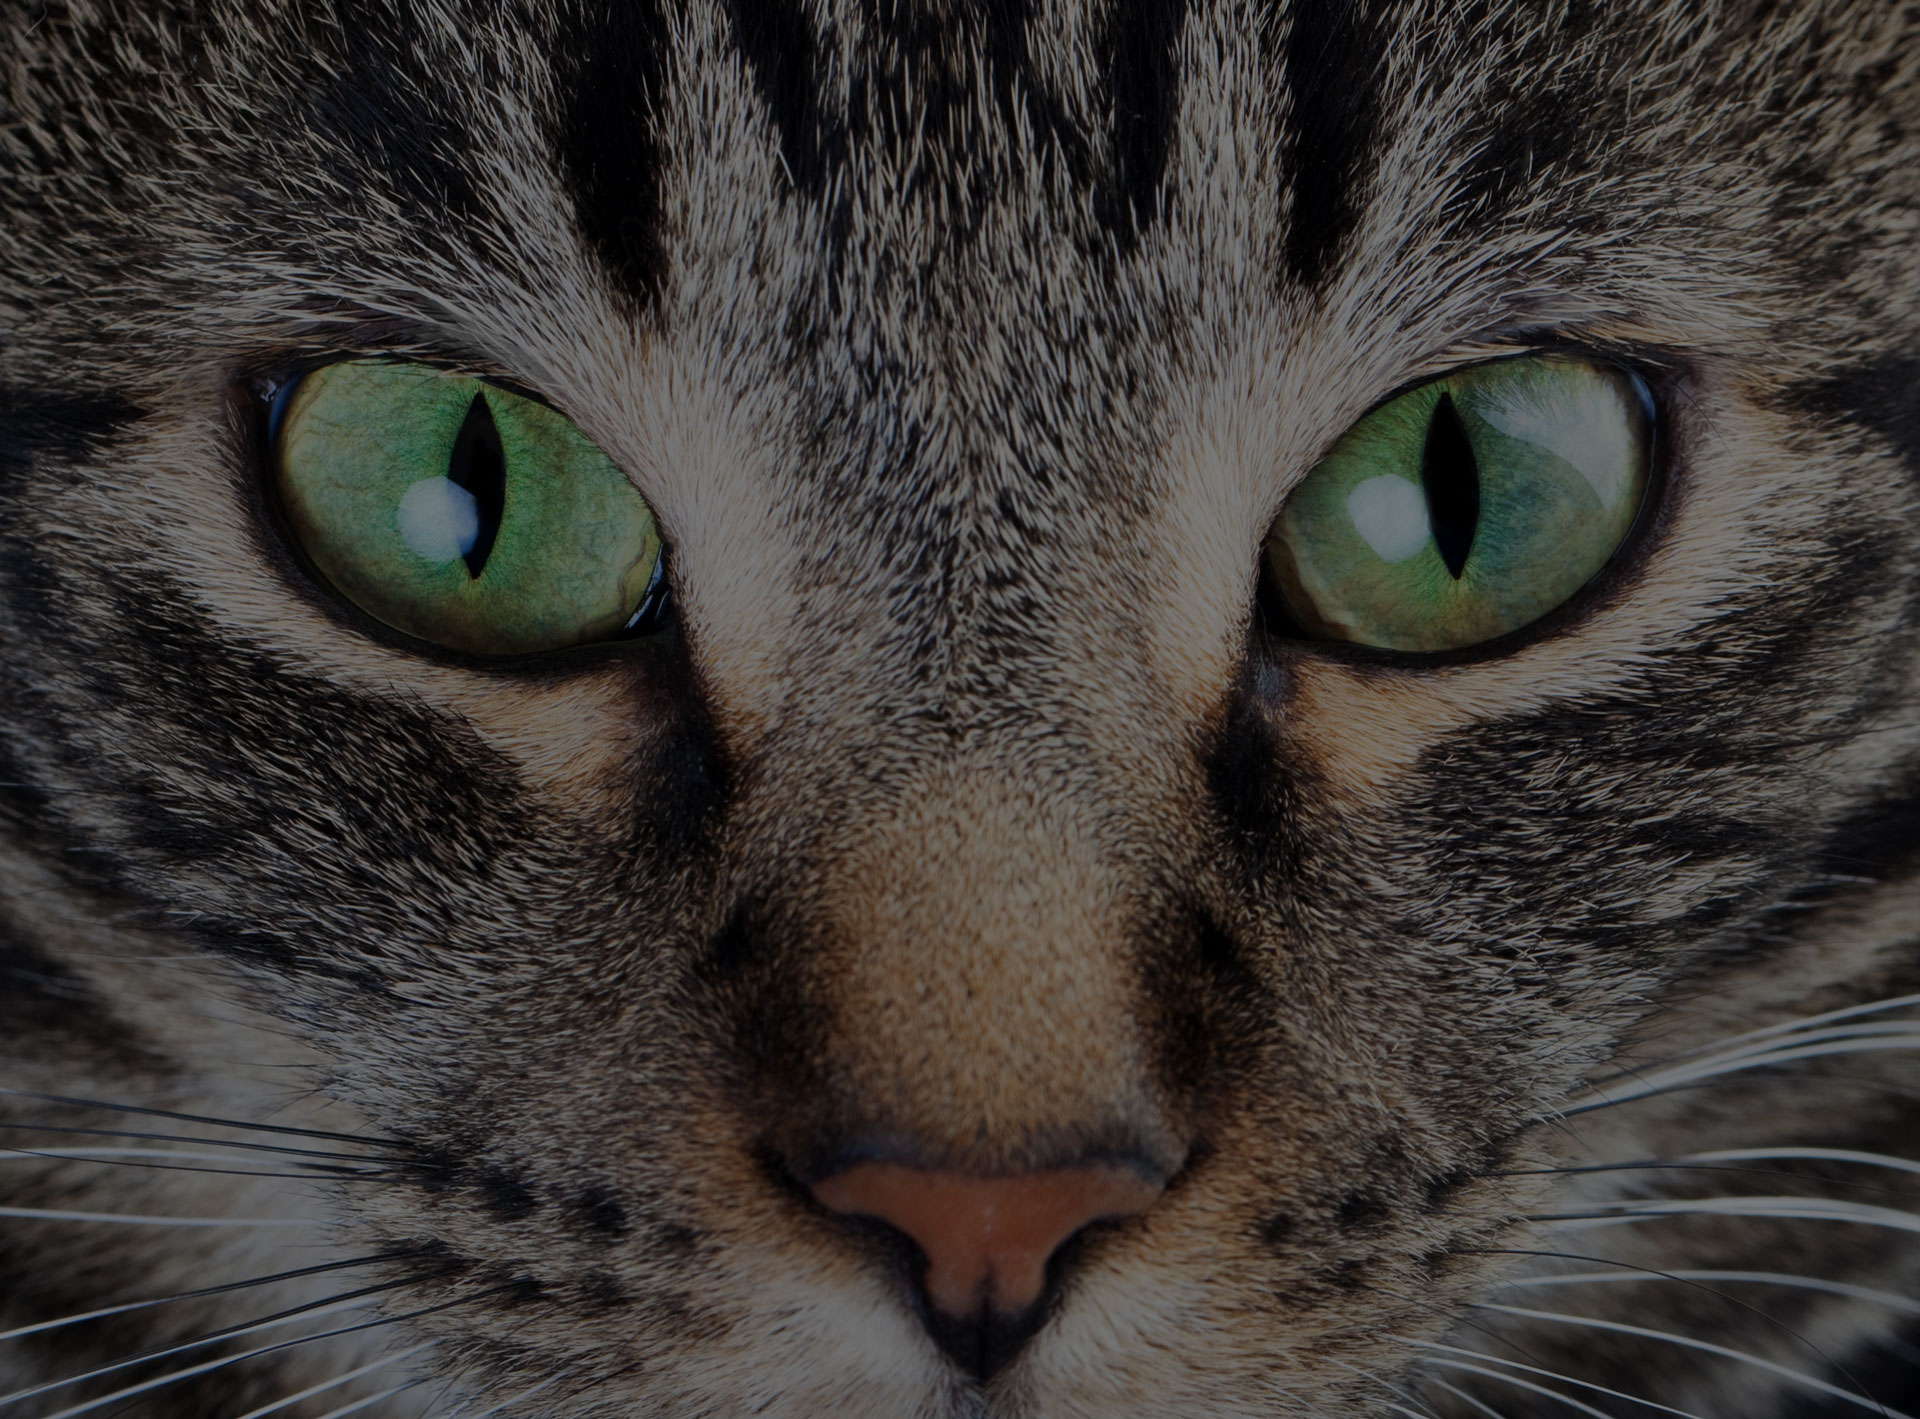 Cat With Green Eye close up